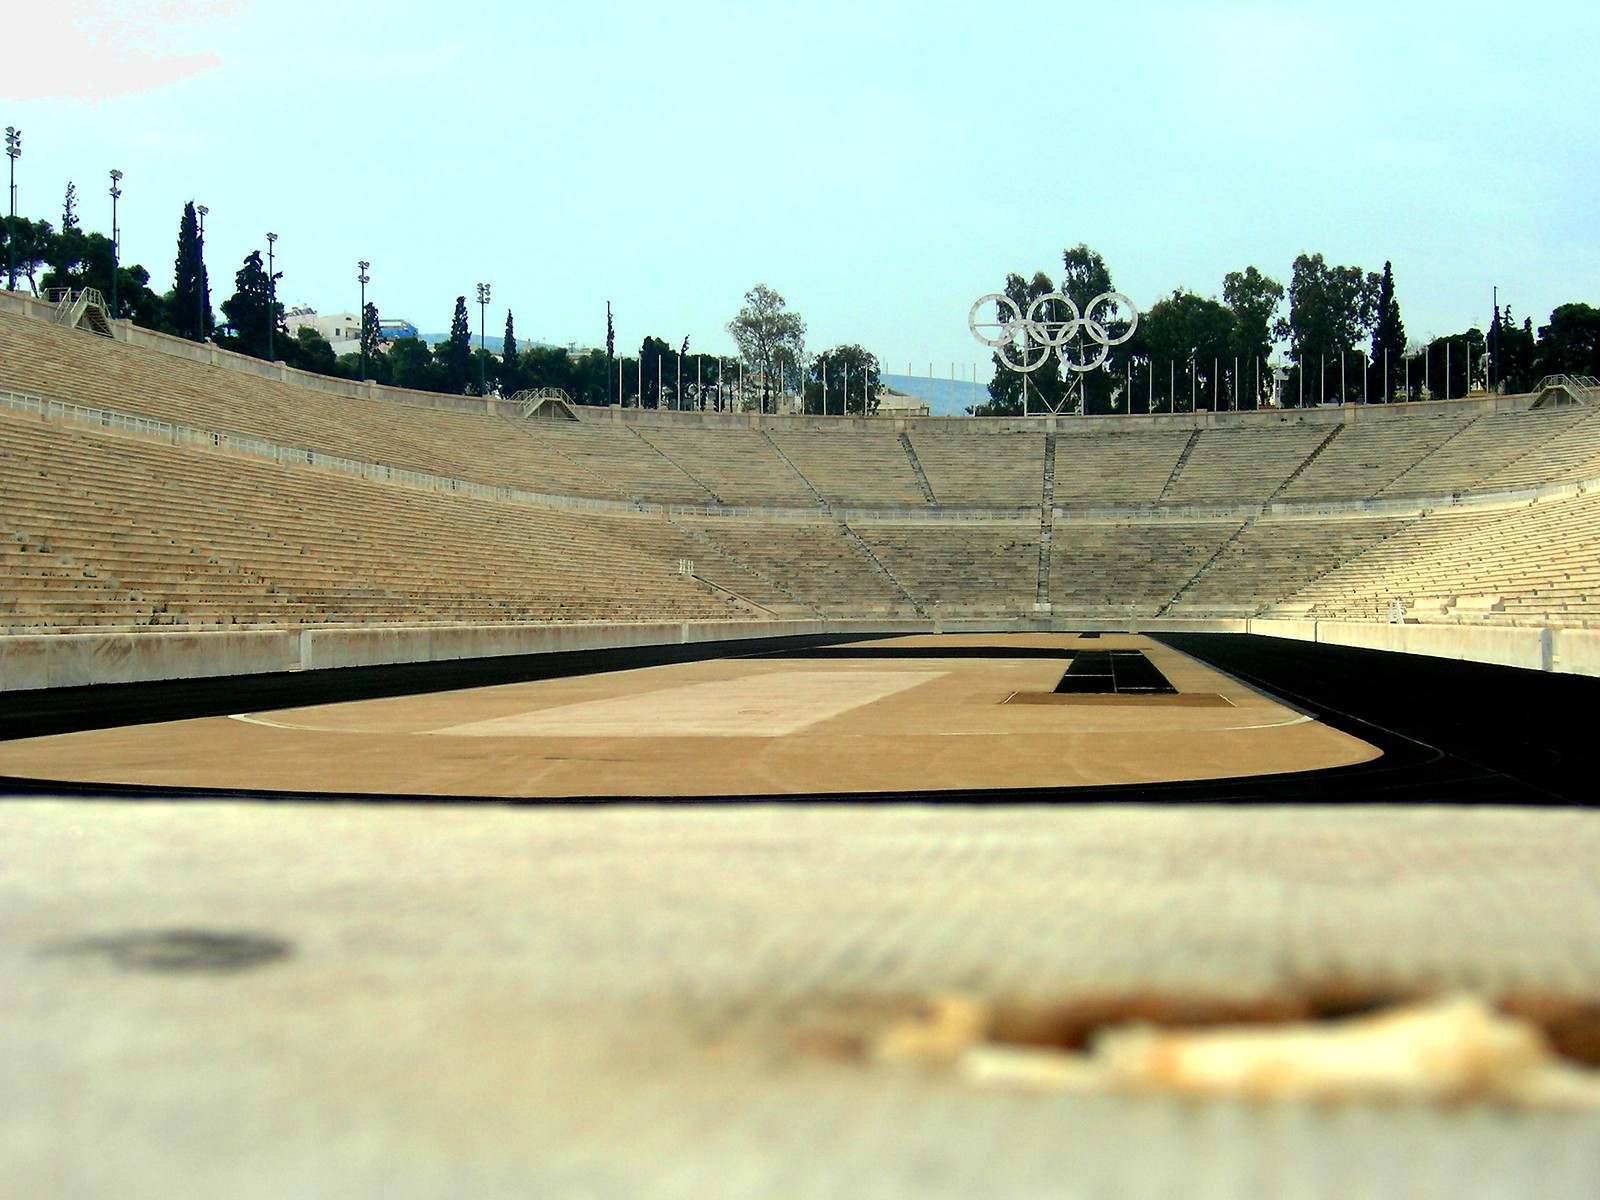 Athens Olympic Stadium 2